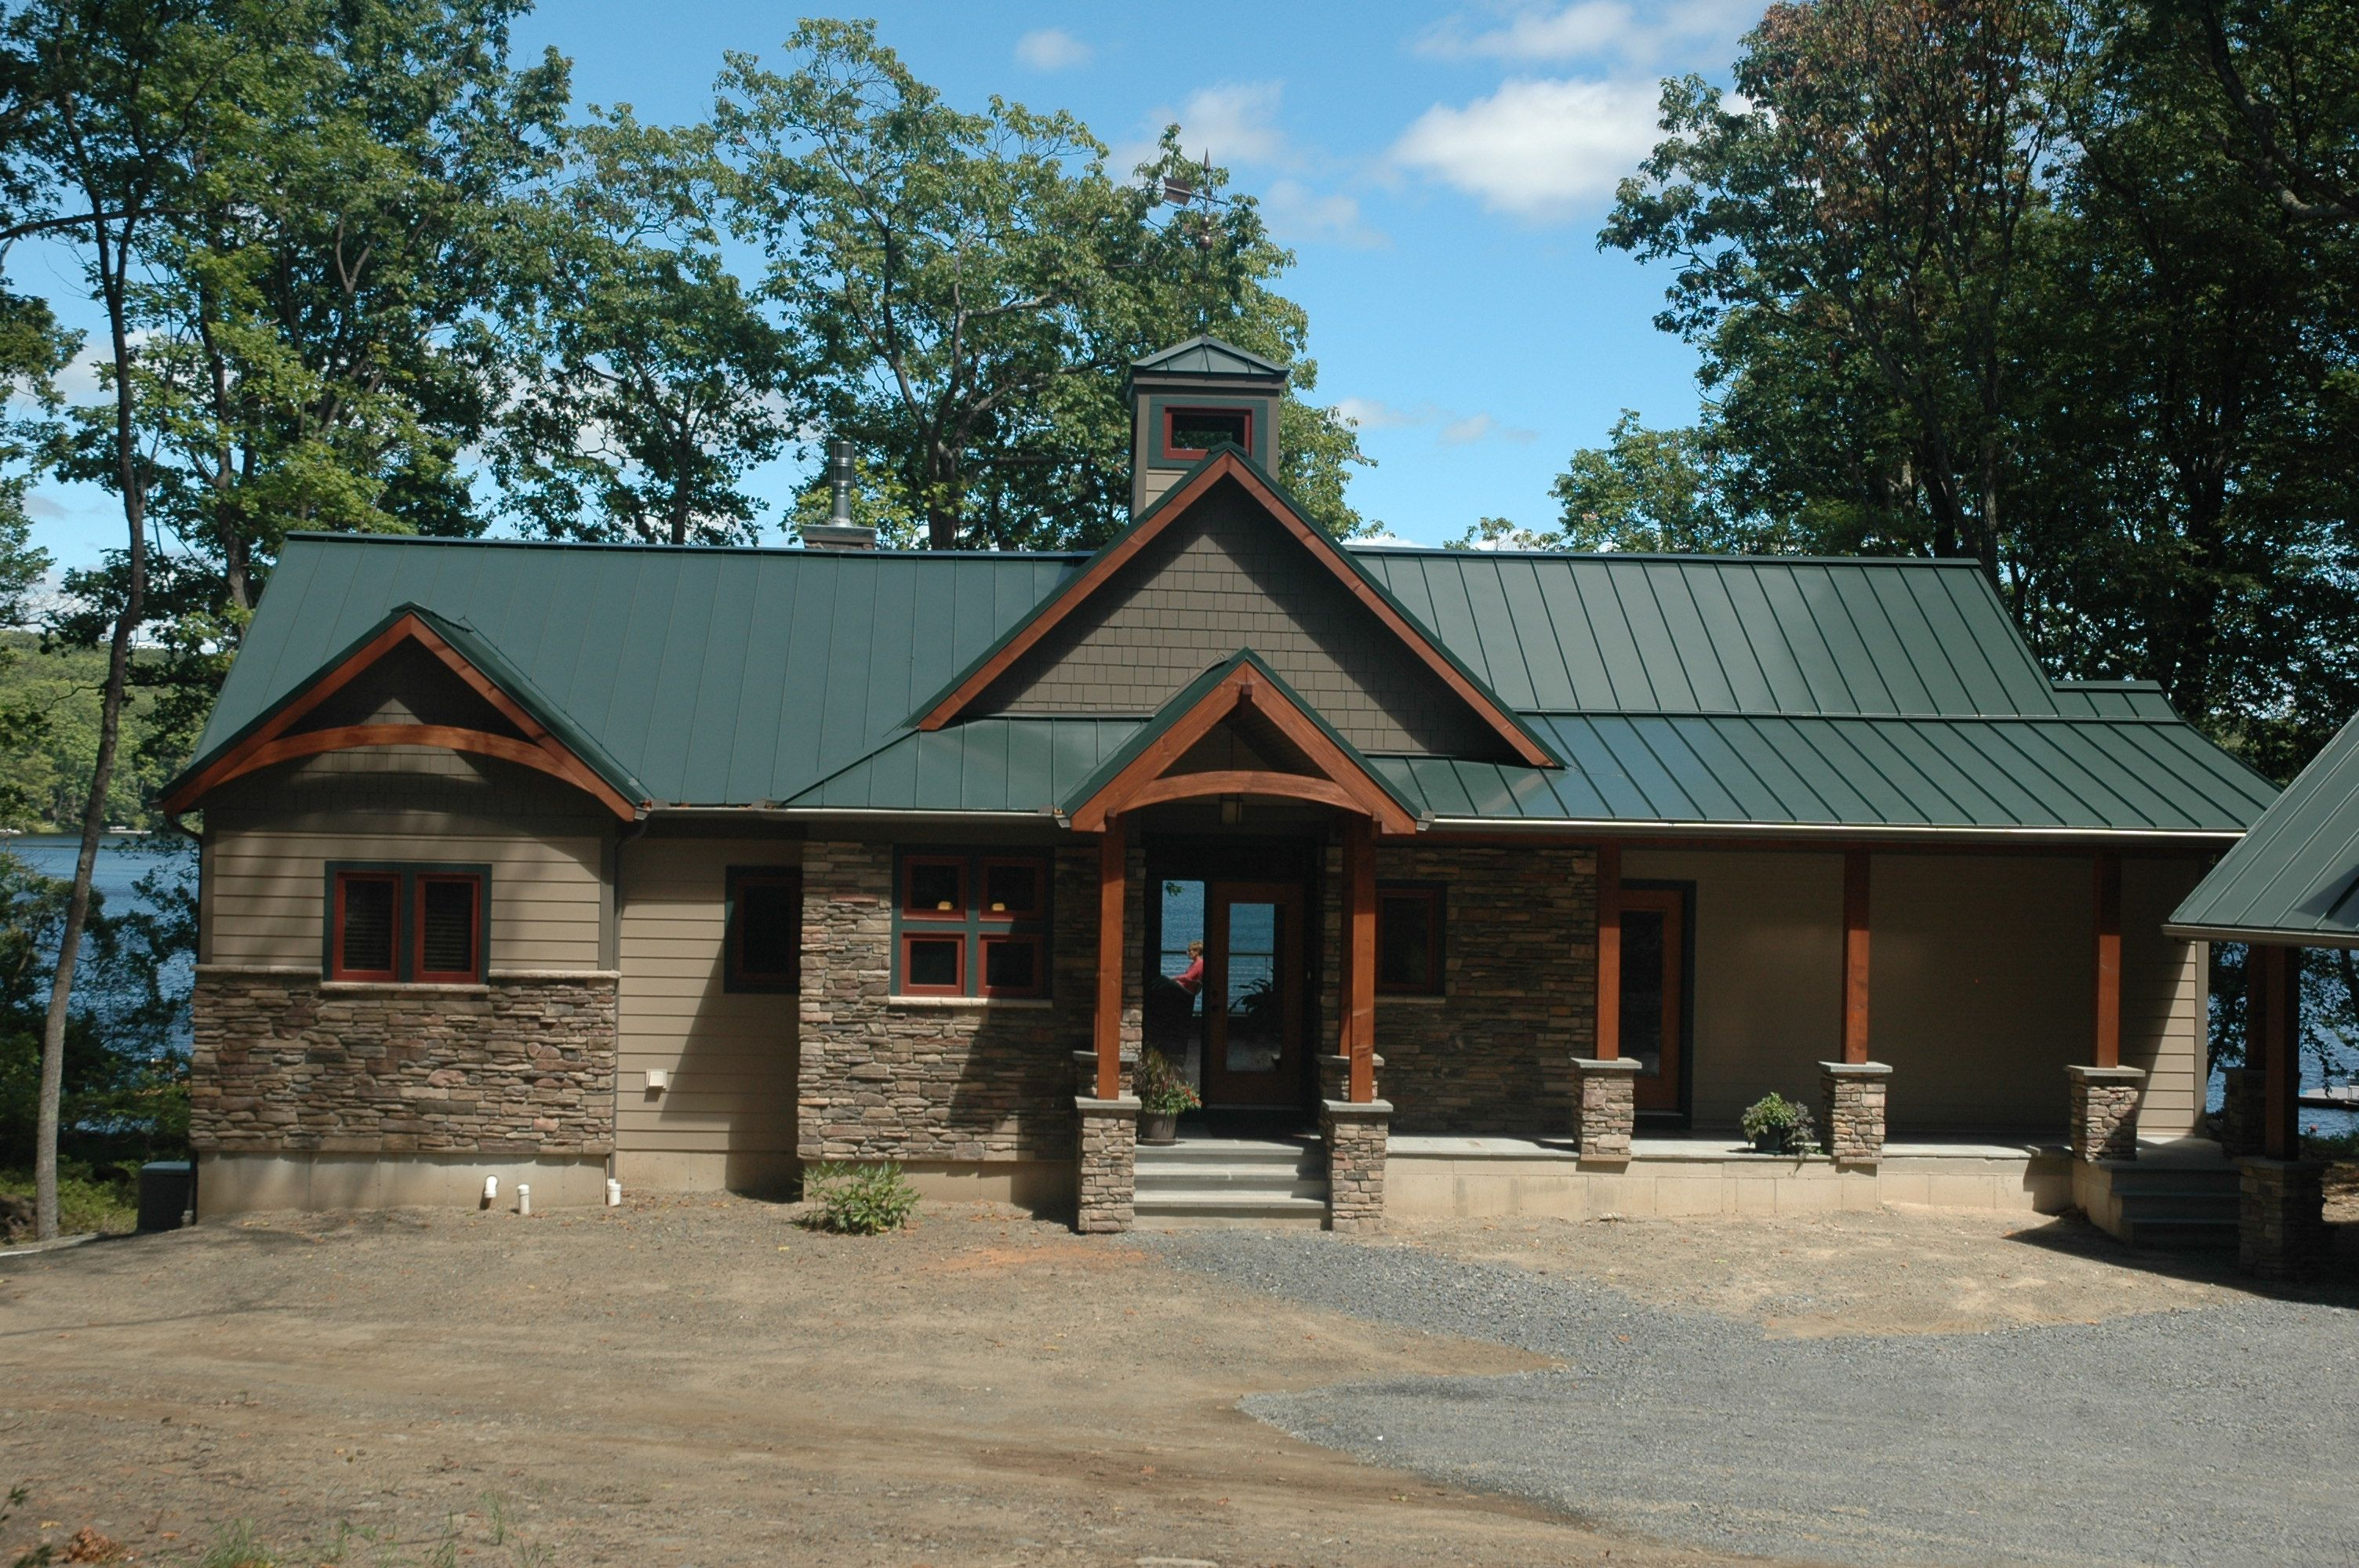 pocono more mountain campground family in sale the for vista camping mountains cabins